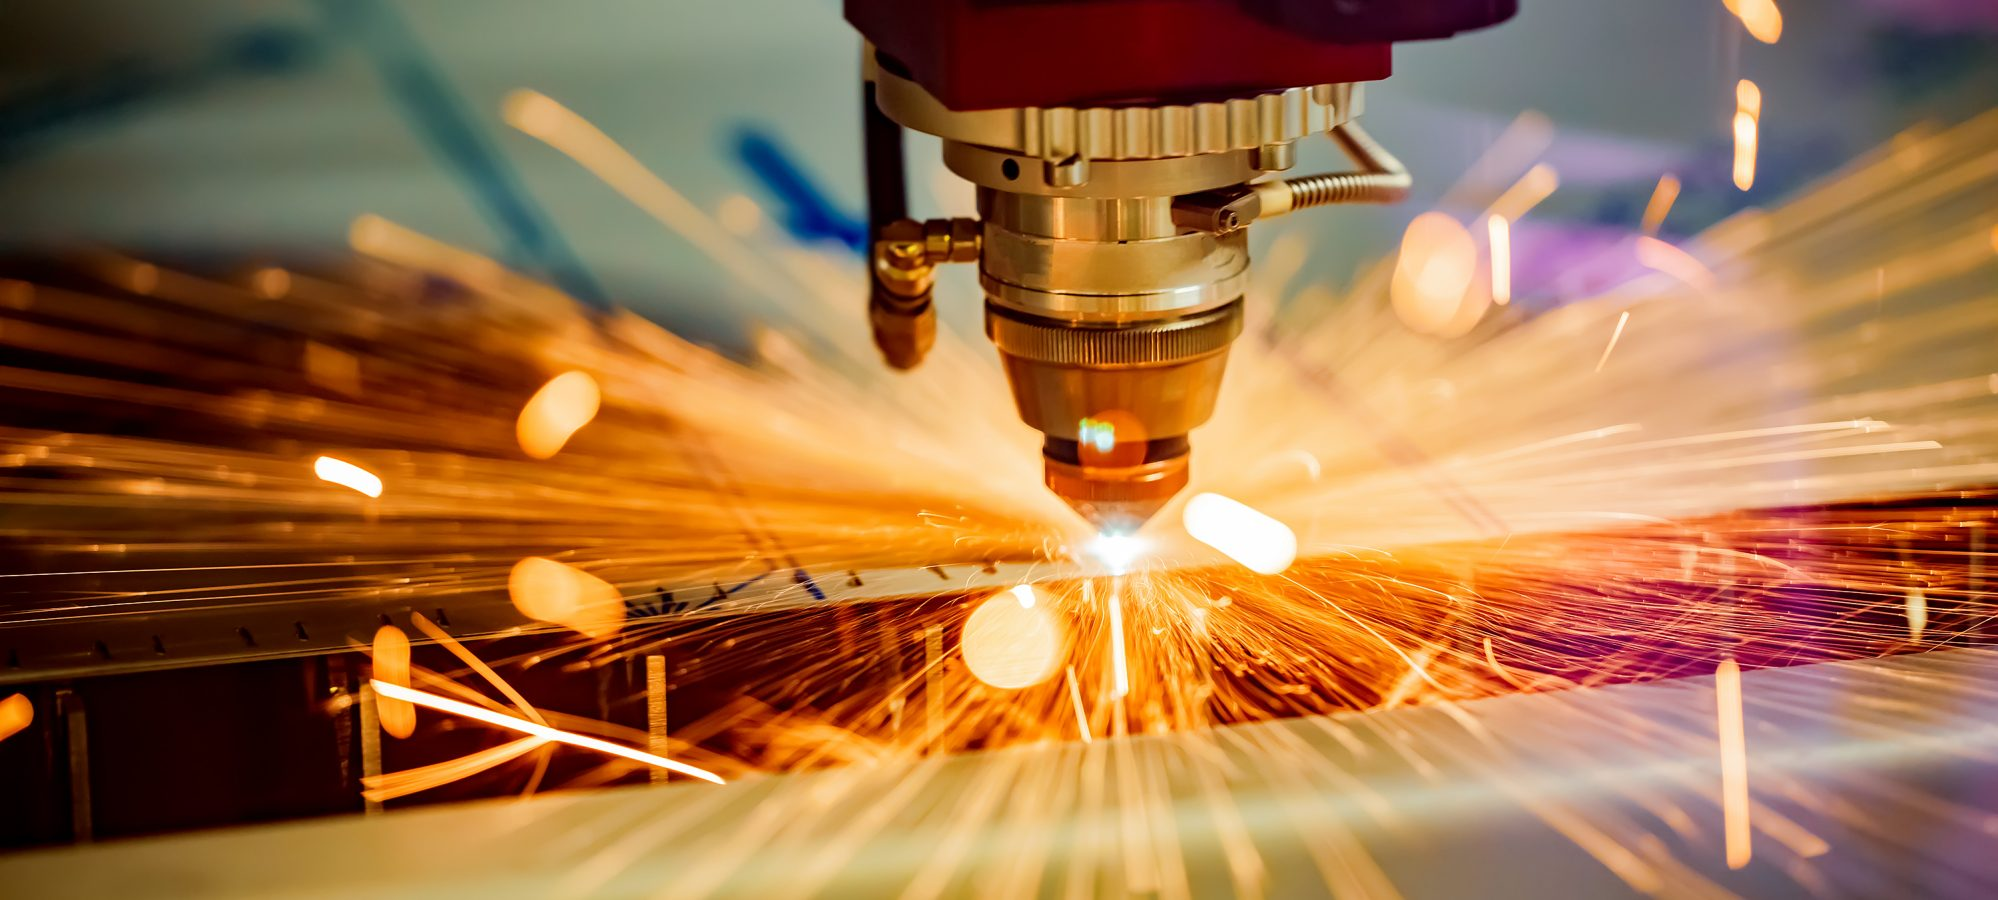 Image of CNC laser cutting metal - manufacturing company with IC-DISC